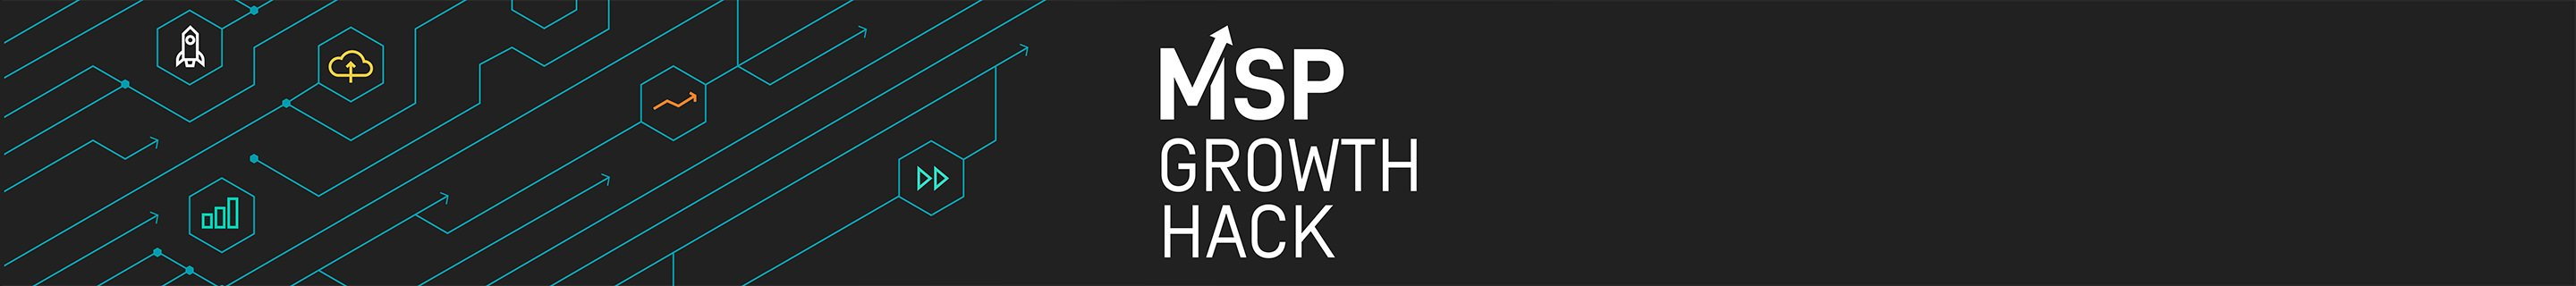 MSP Growth Hack